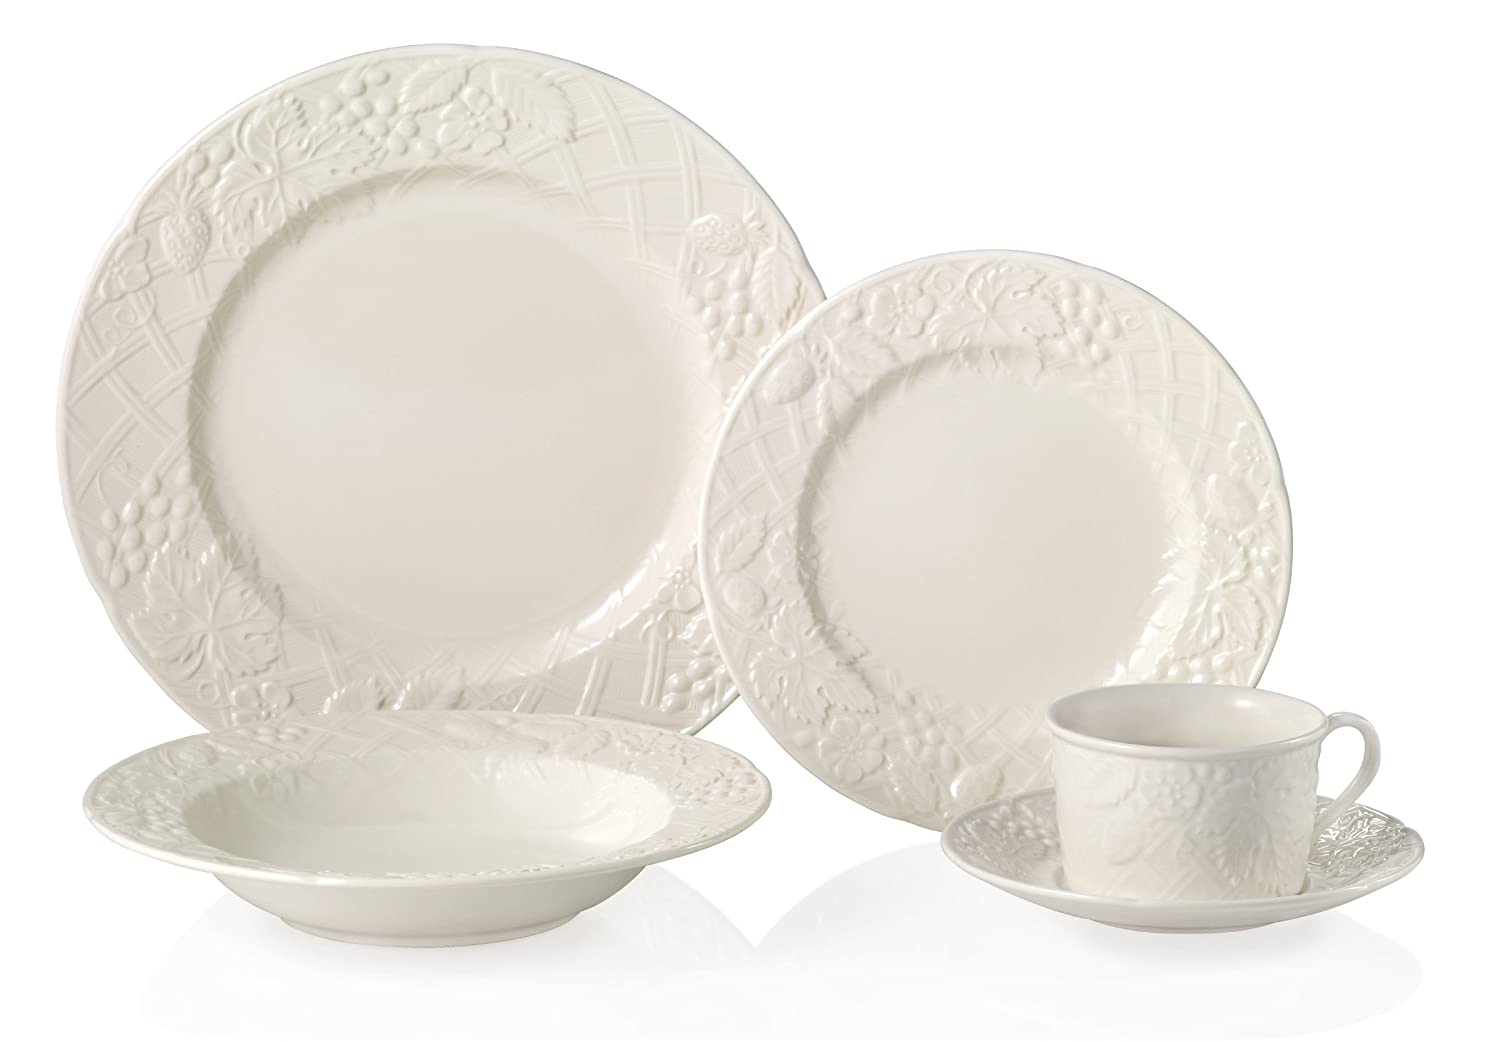 Christmas Tablescape Décor - Mikasa English Countryside 40-piece dinnerware set - Service for 8